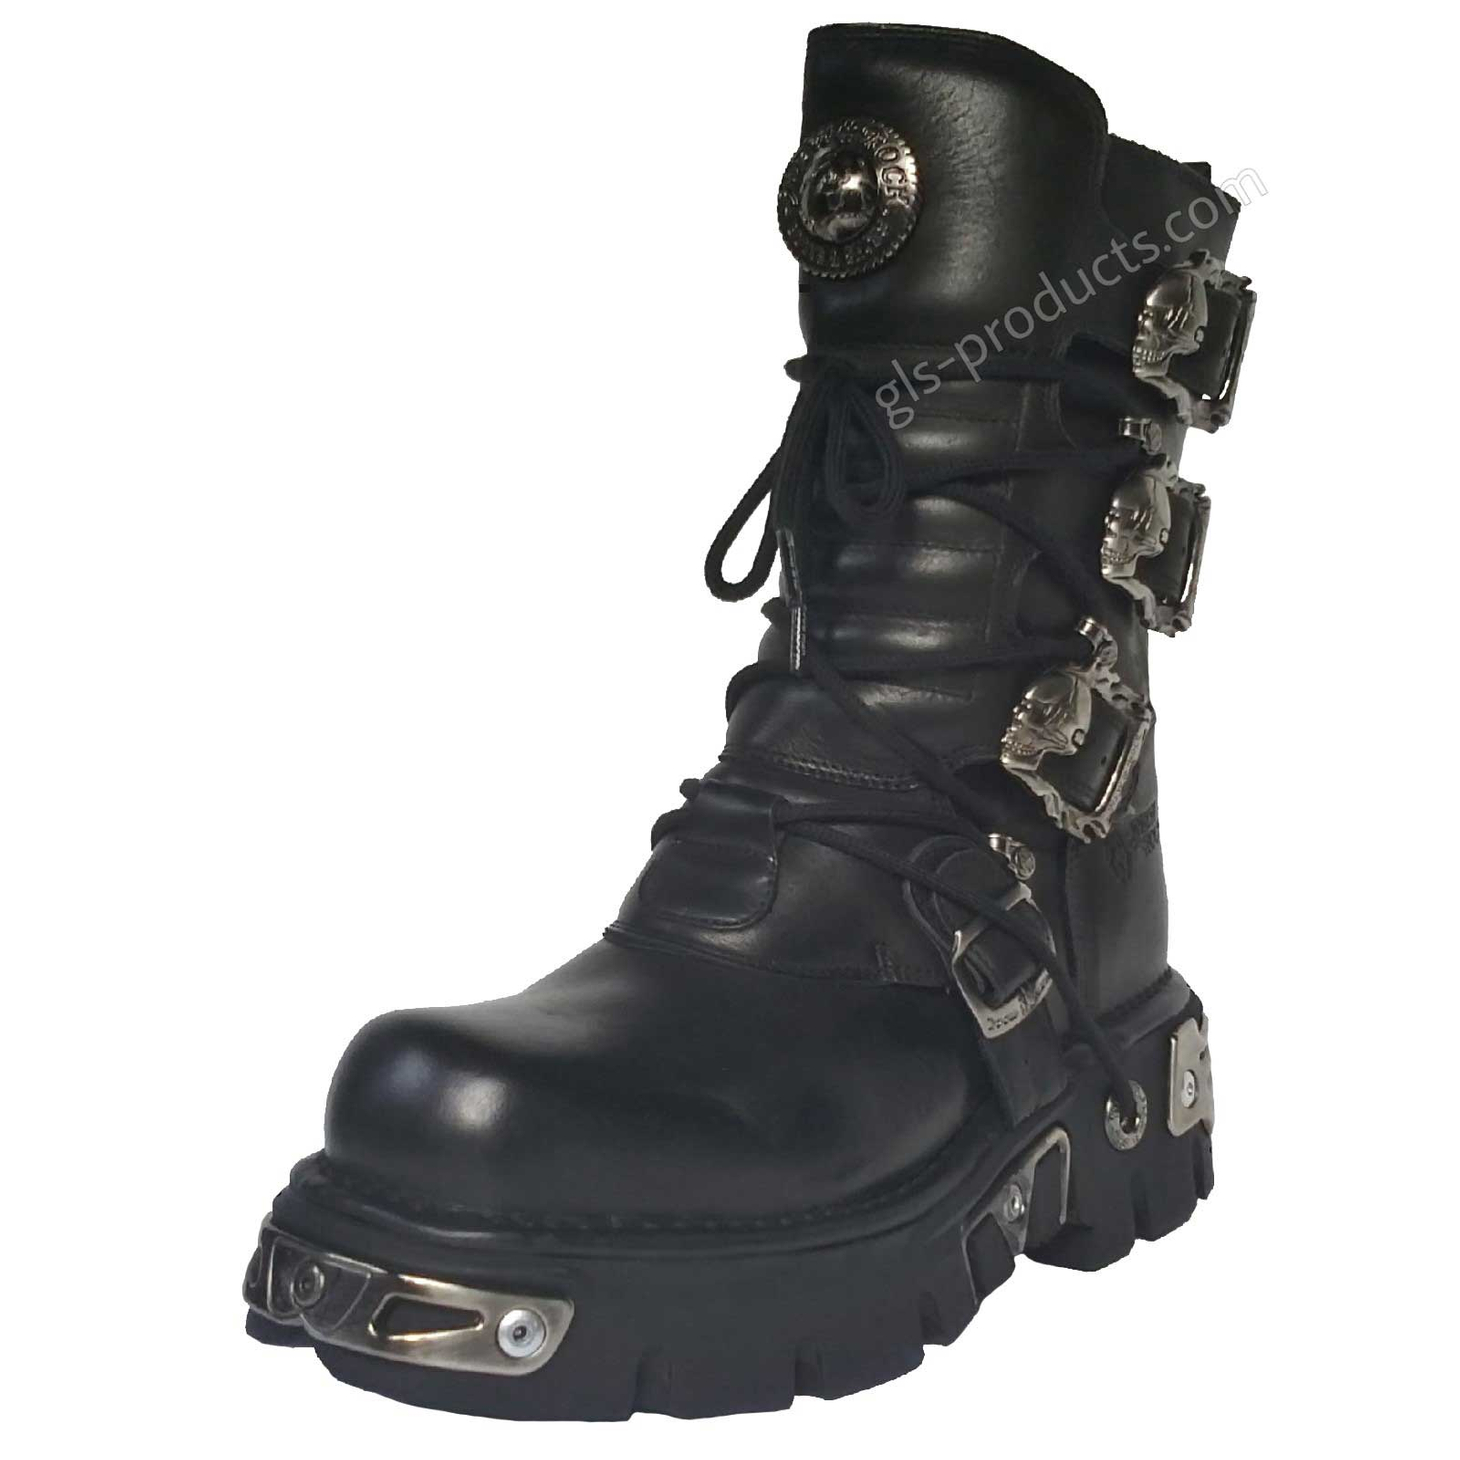 New Rock Boots 391, Skulls – Picture 2